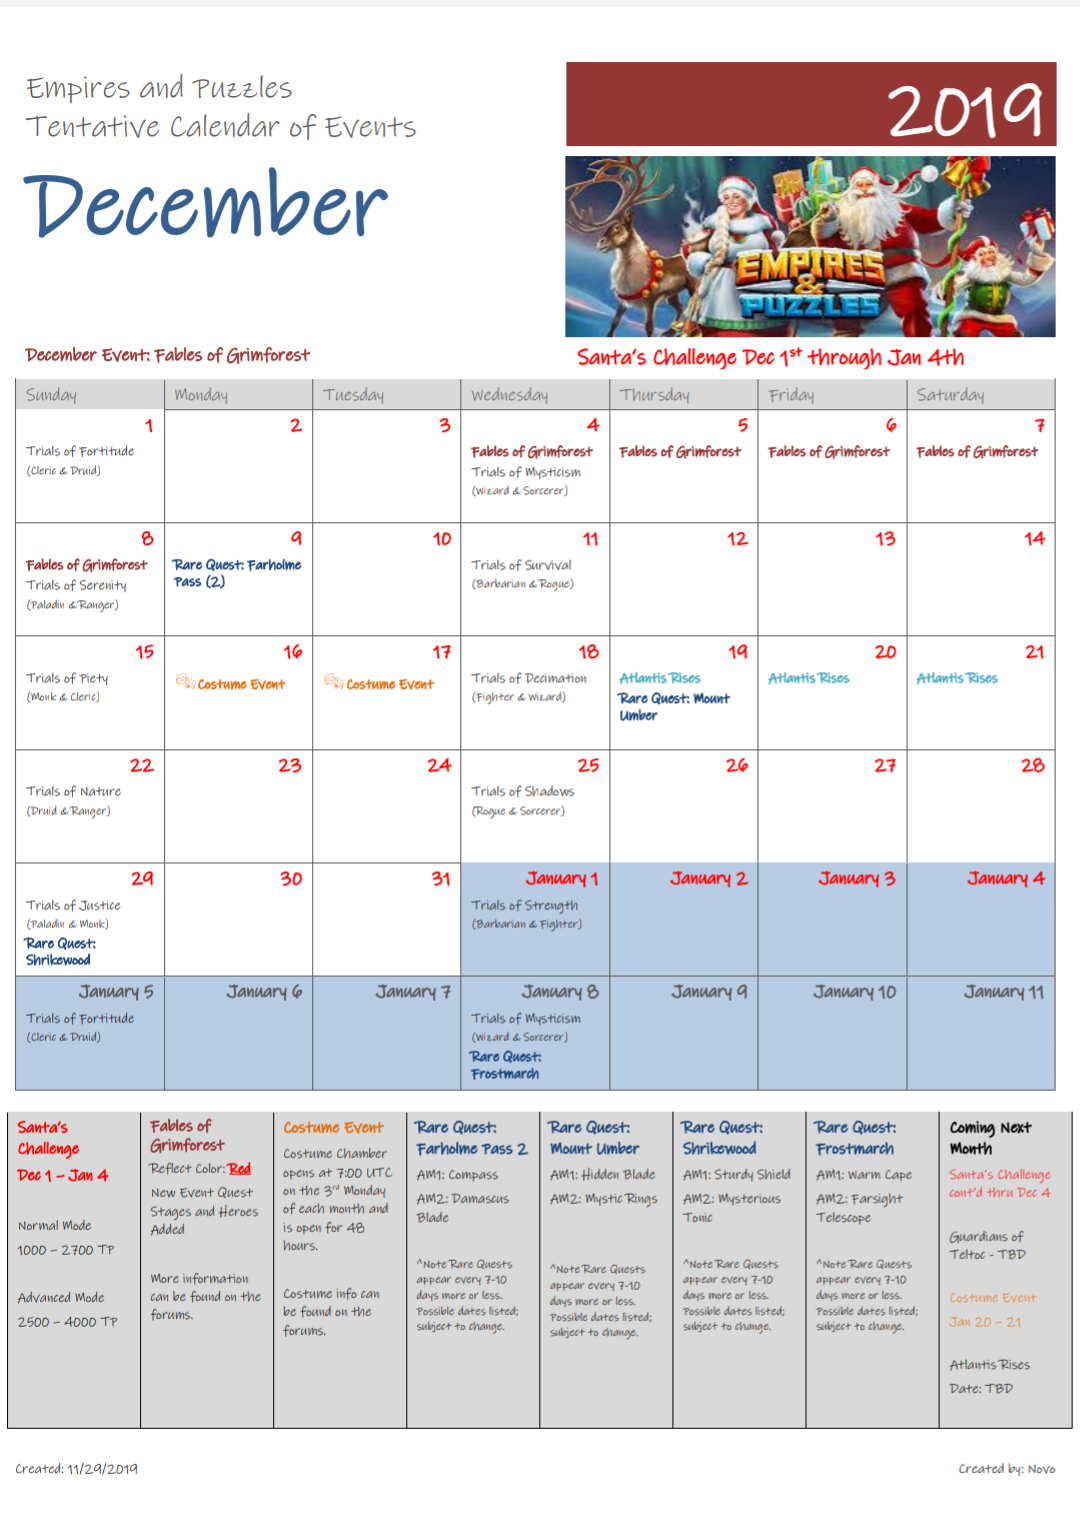 December 2019 Calendar Of Events : Empiresandpuzzles with Empire And Puzzles Calendar